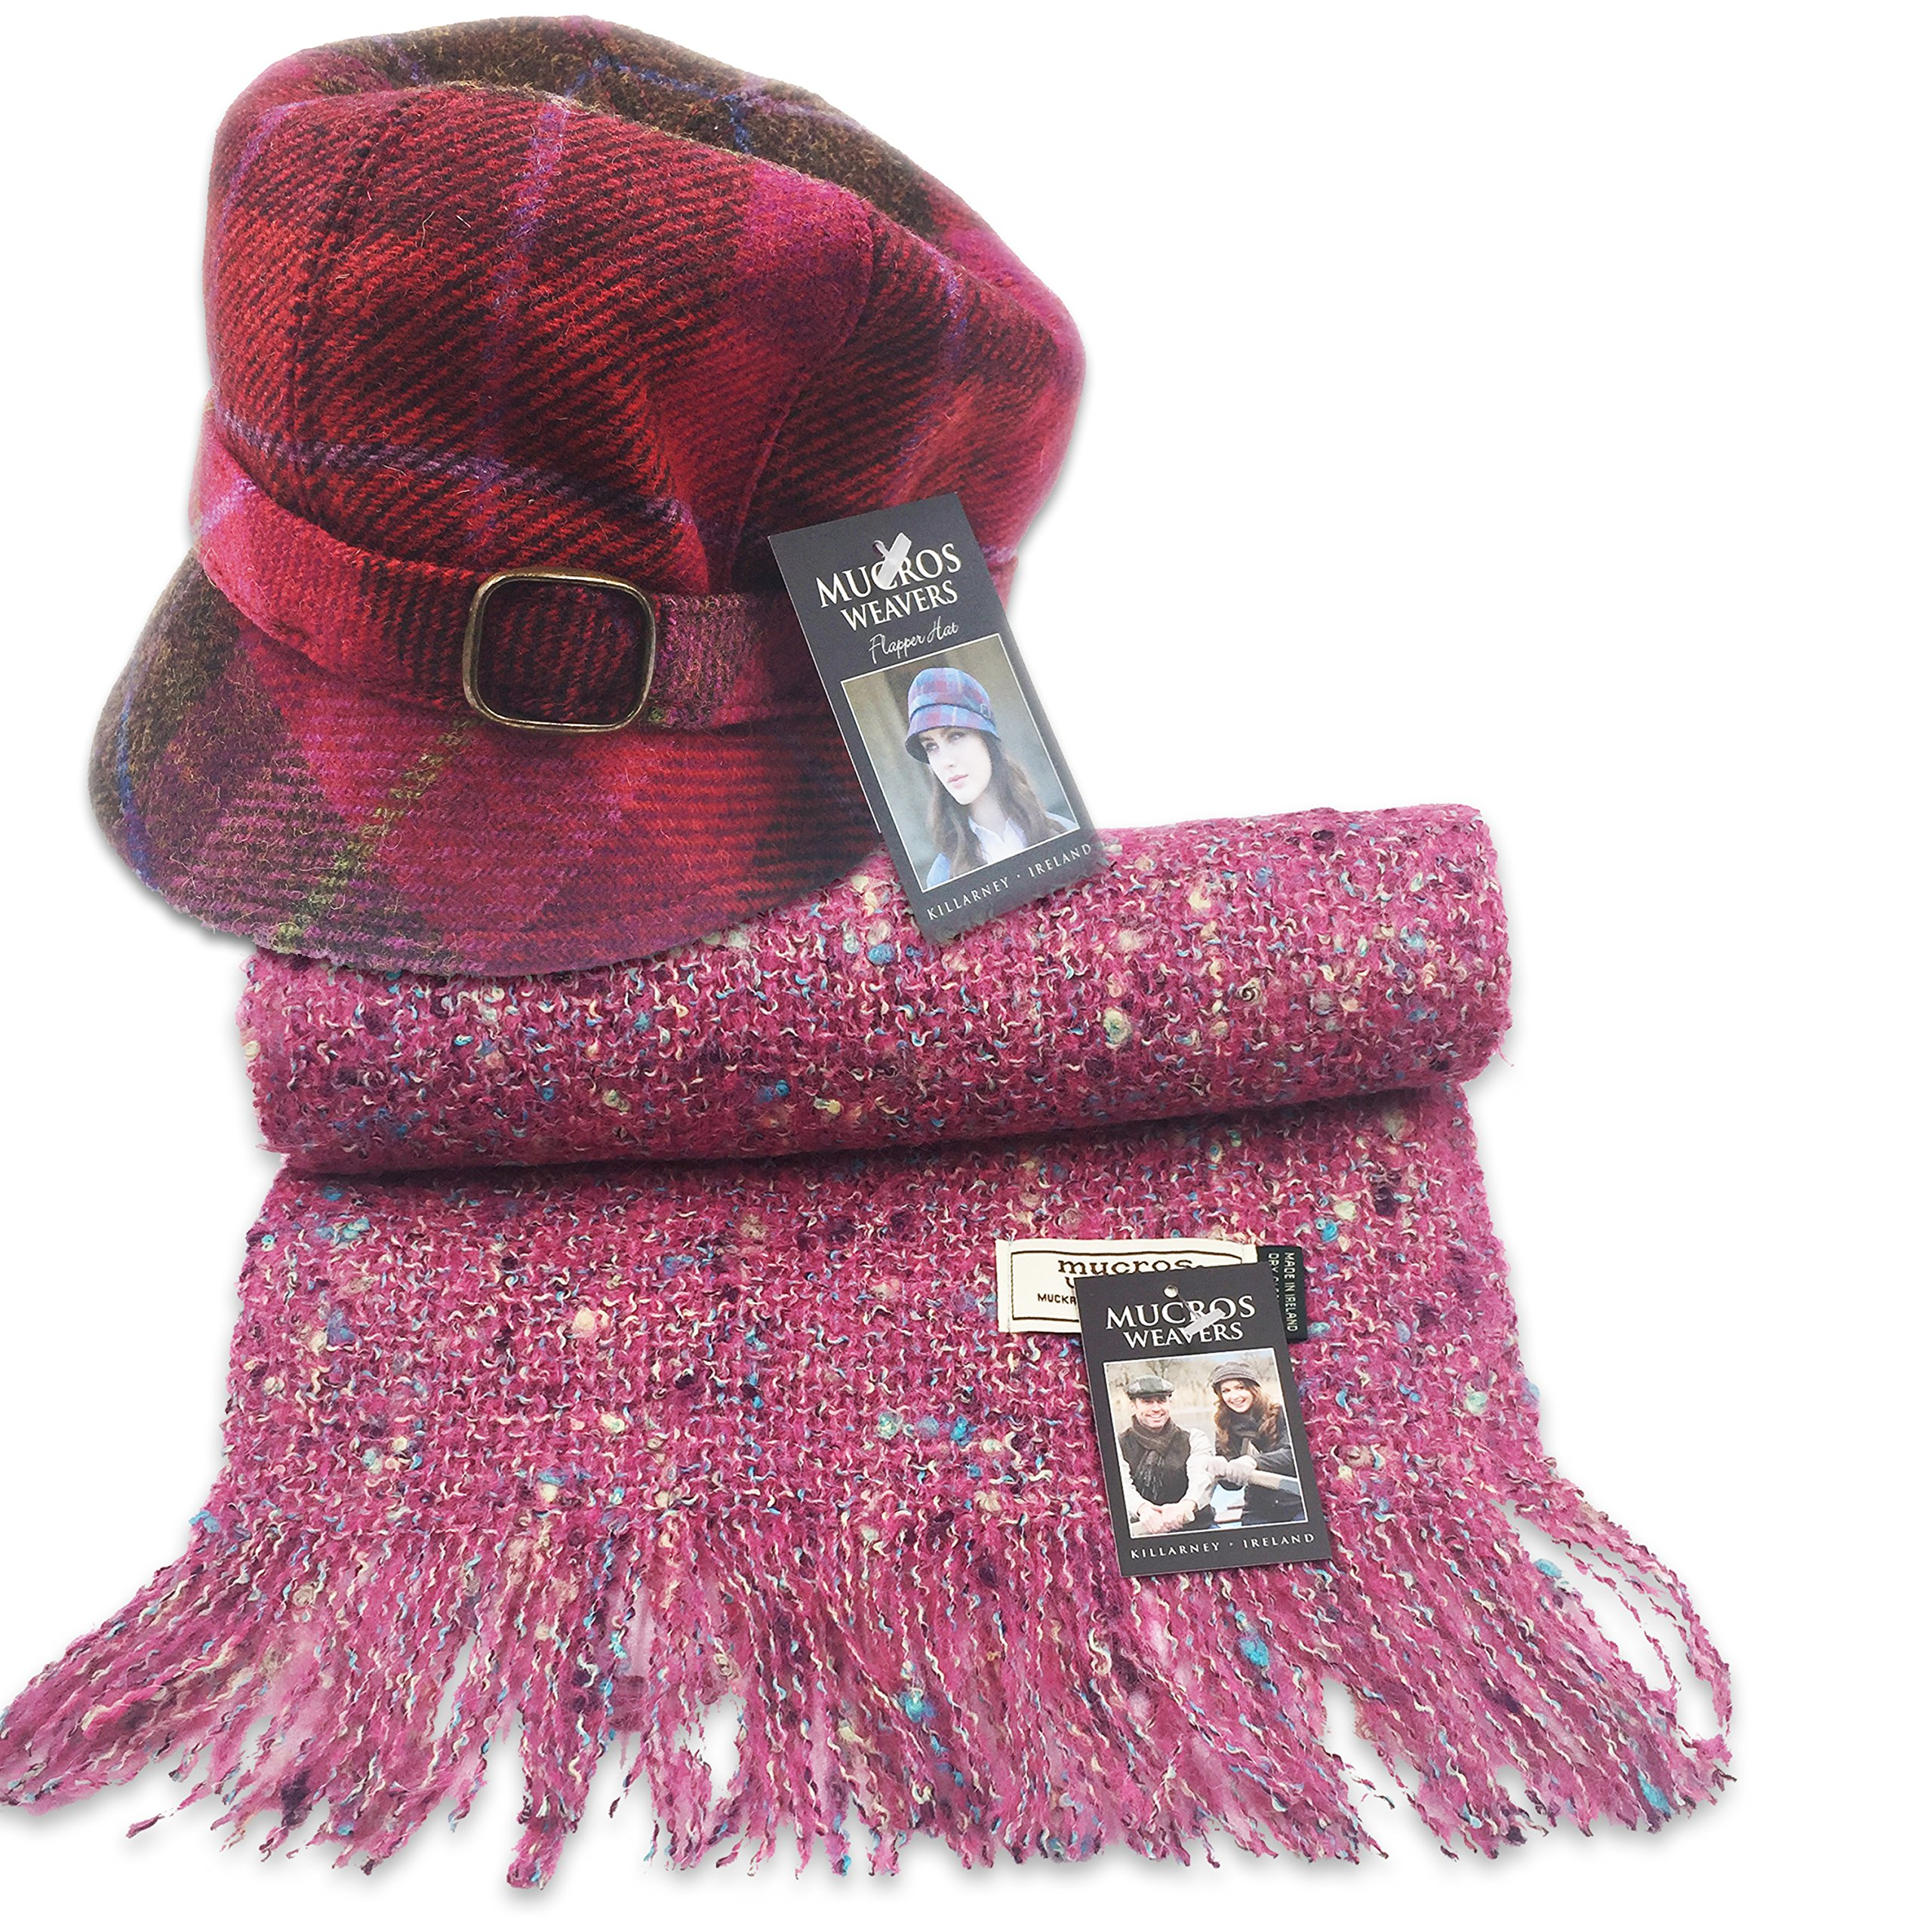 Mucros Flapper Hat (Red ad Pink) and Alpaca Scarf Set (Pink)